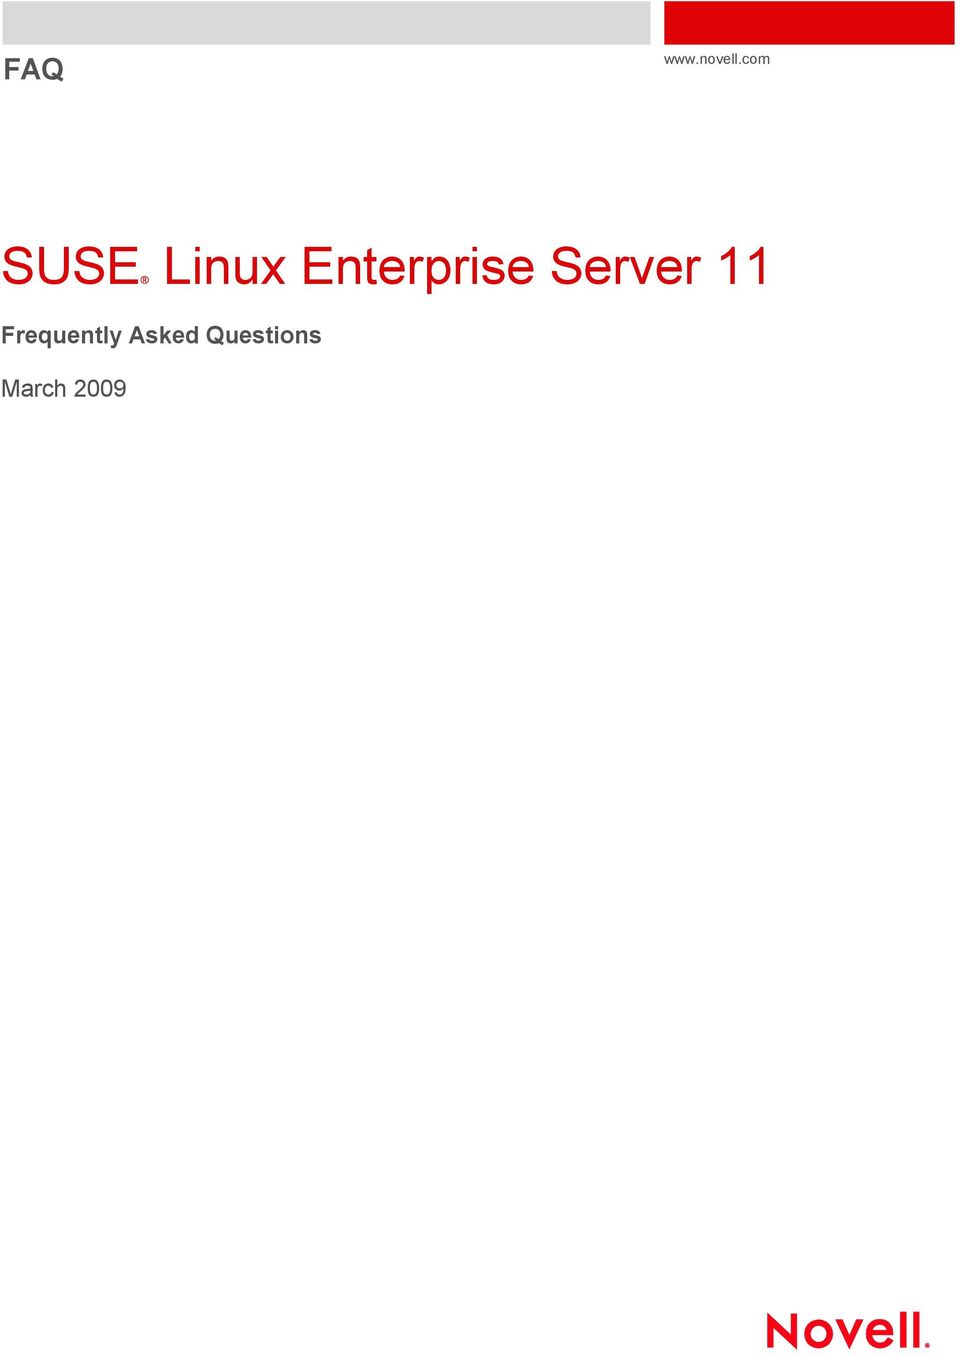 SUSE Linux Enterprise Server 11 - PDF